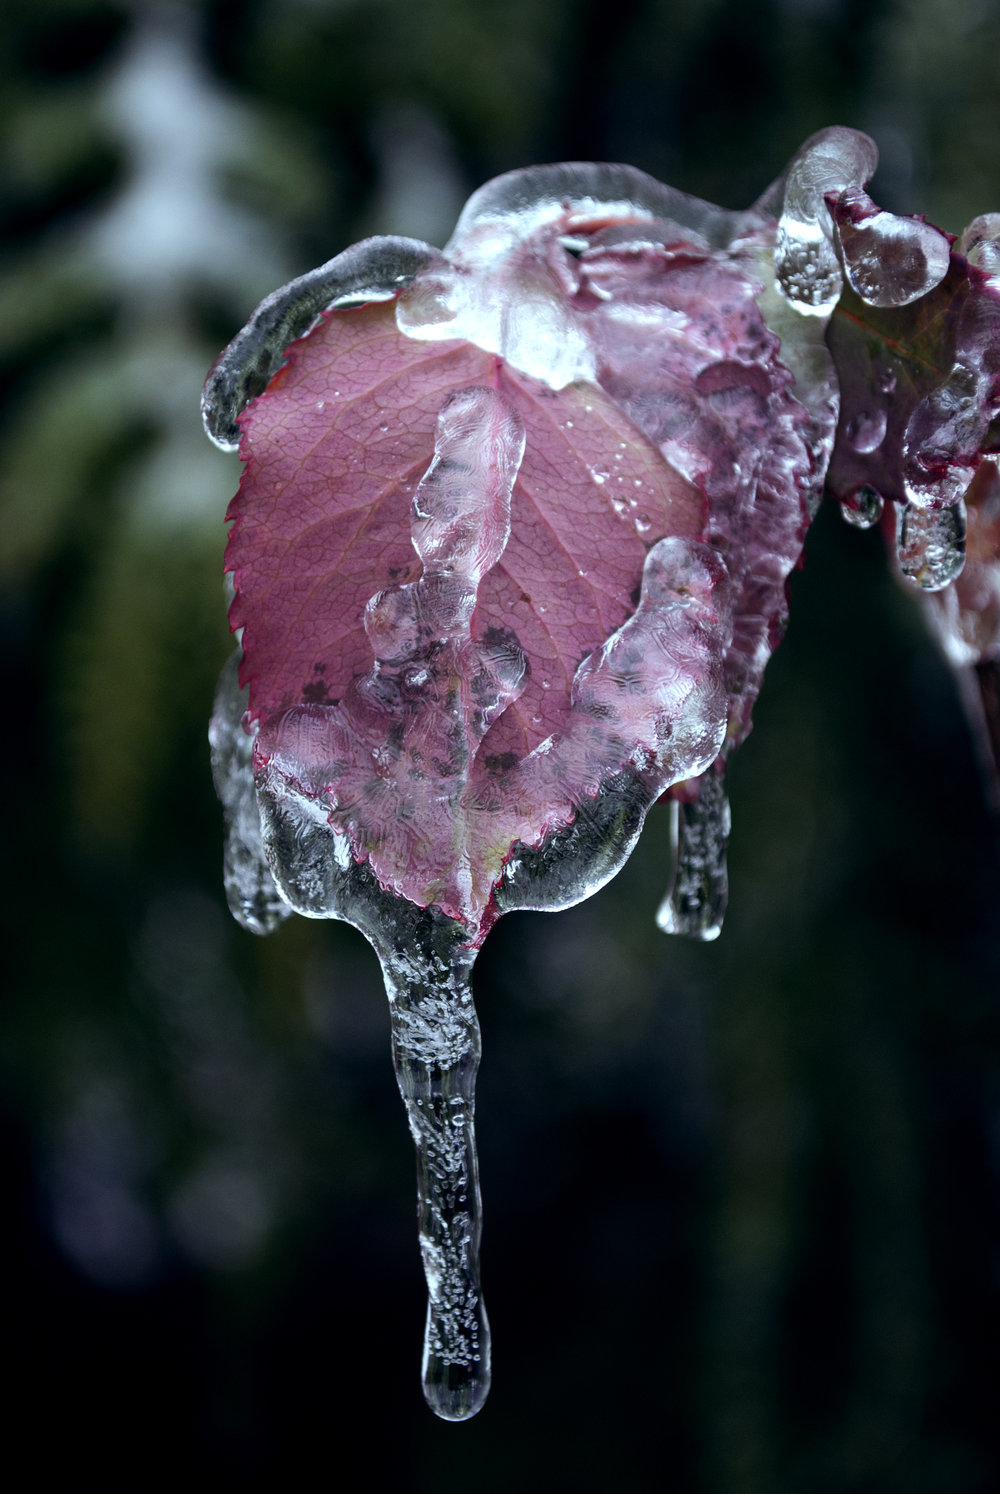 Freezing Rain II, Portland, OR